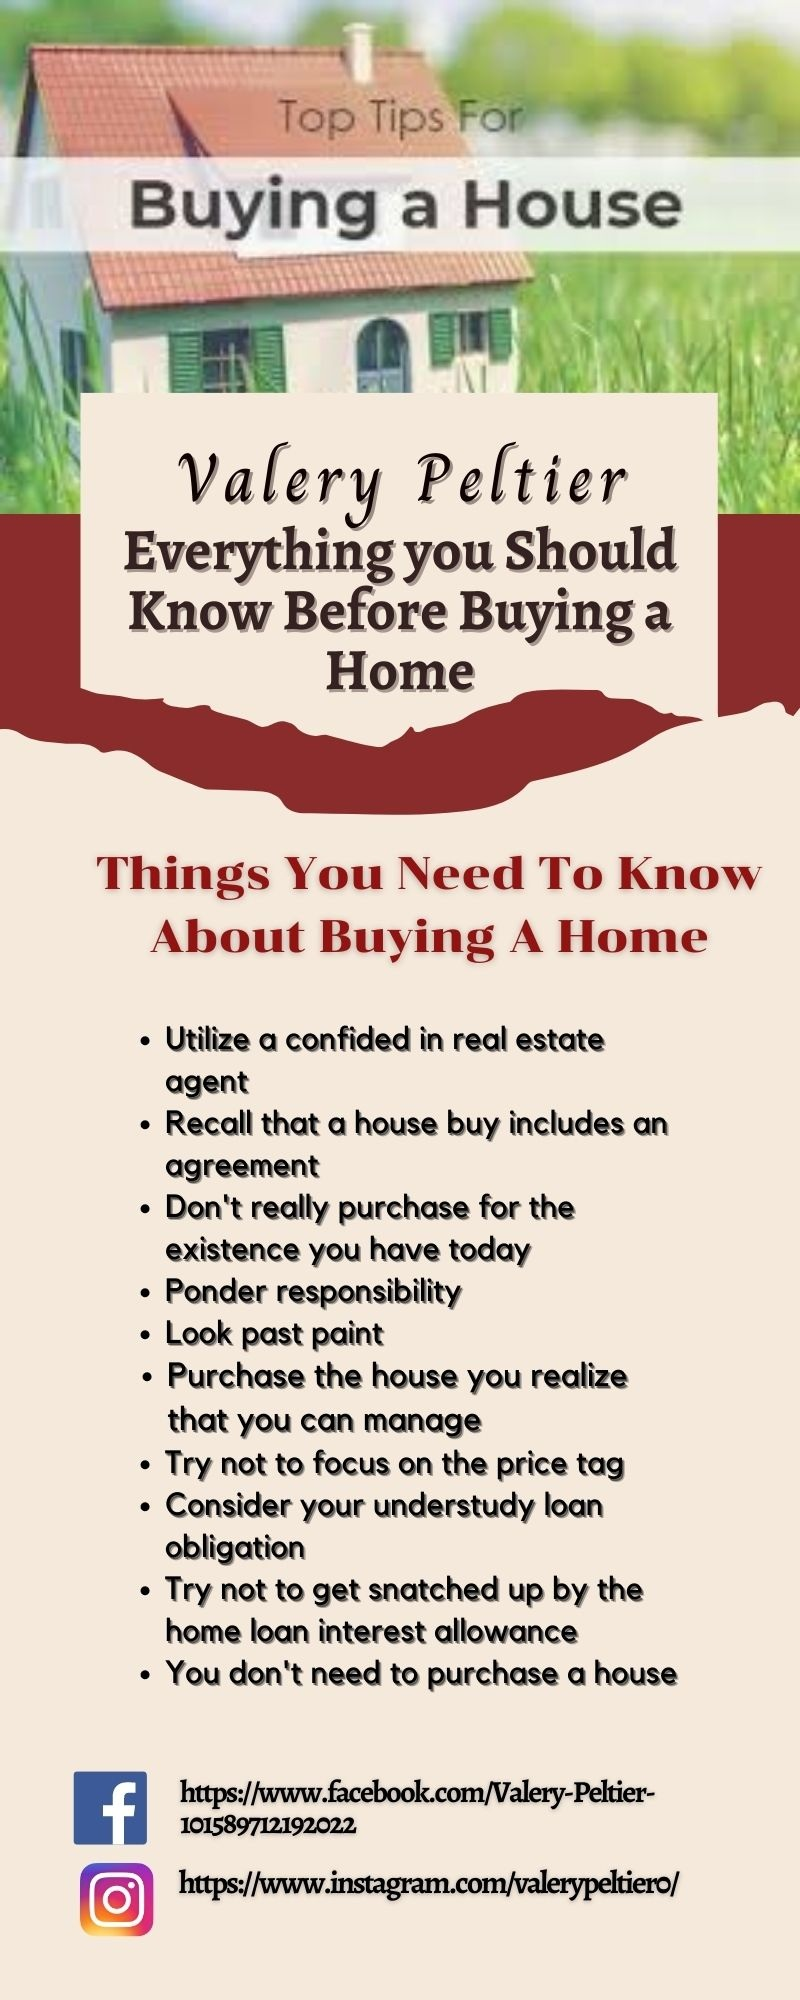 Valery Peltier – Everything you Should Know Before Buying a Home